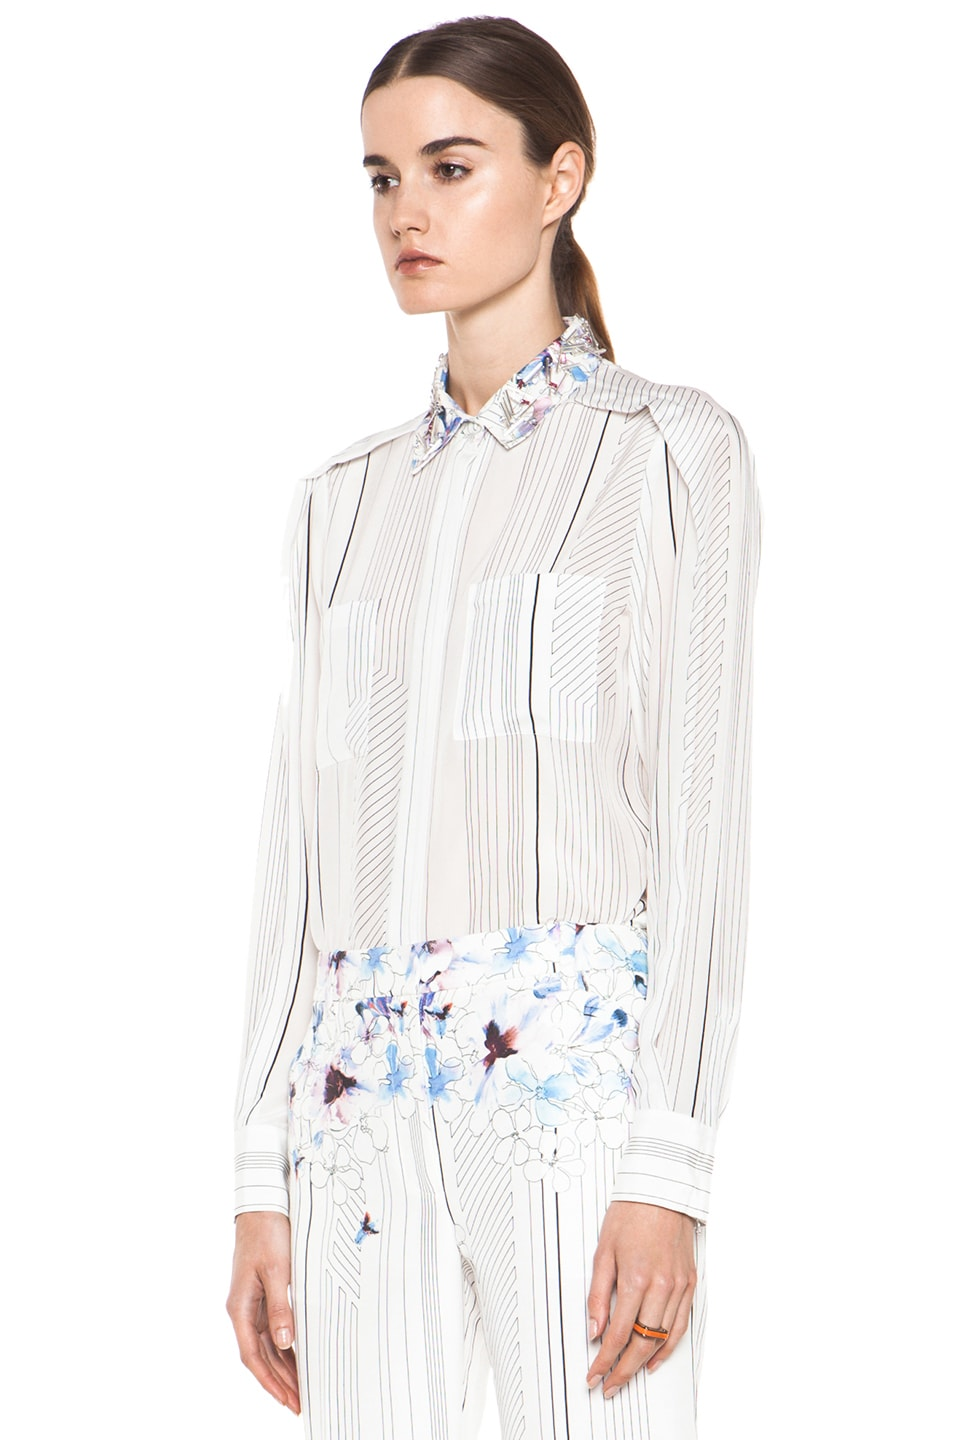 Image 3 of 3.1 phillip lim Pleat Shoulder Shirt with Embellished Collar in Antique White